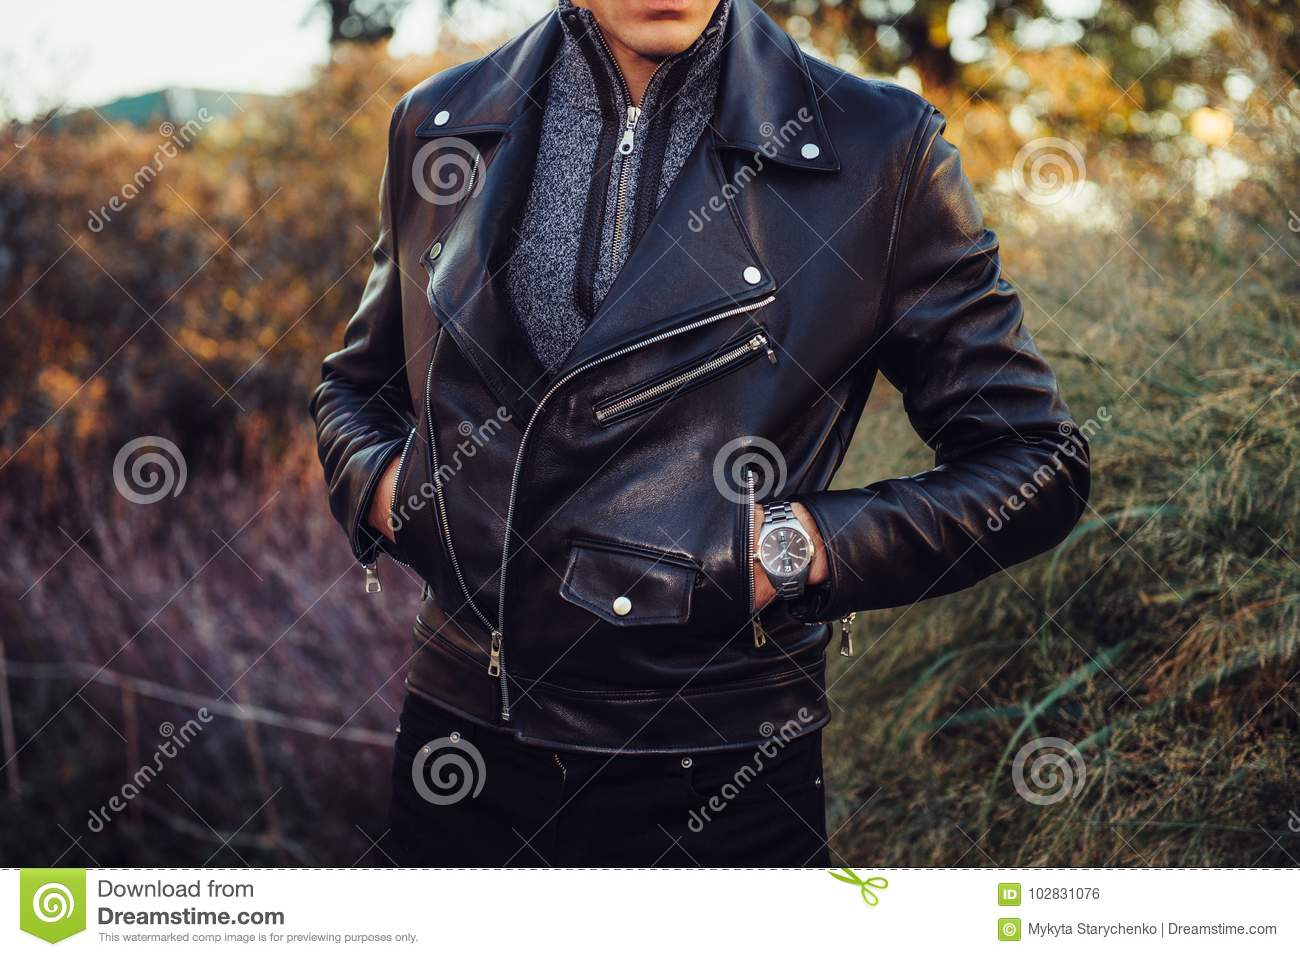 Man wearing black leather jacket and watch posing outdoors